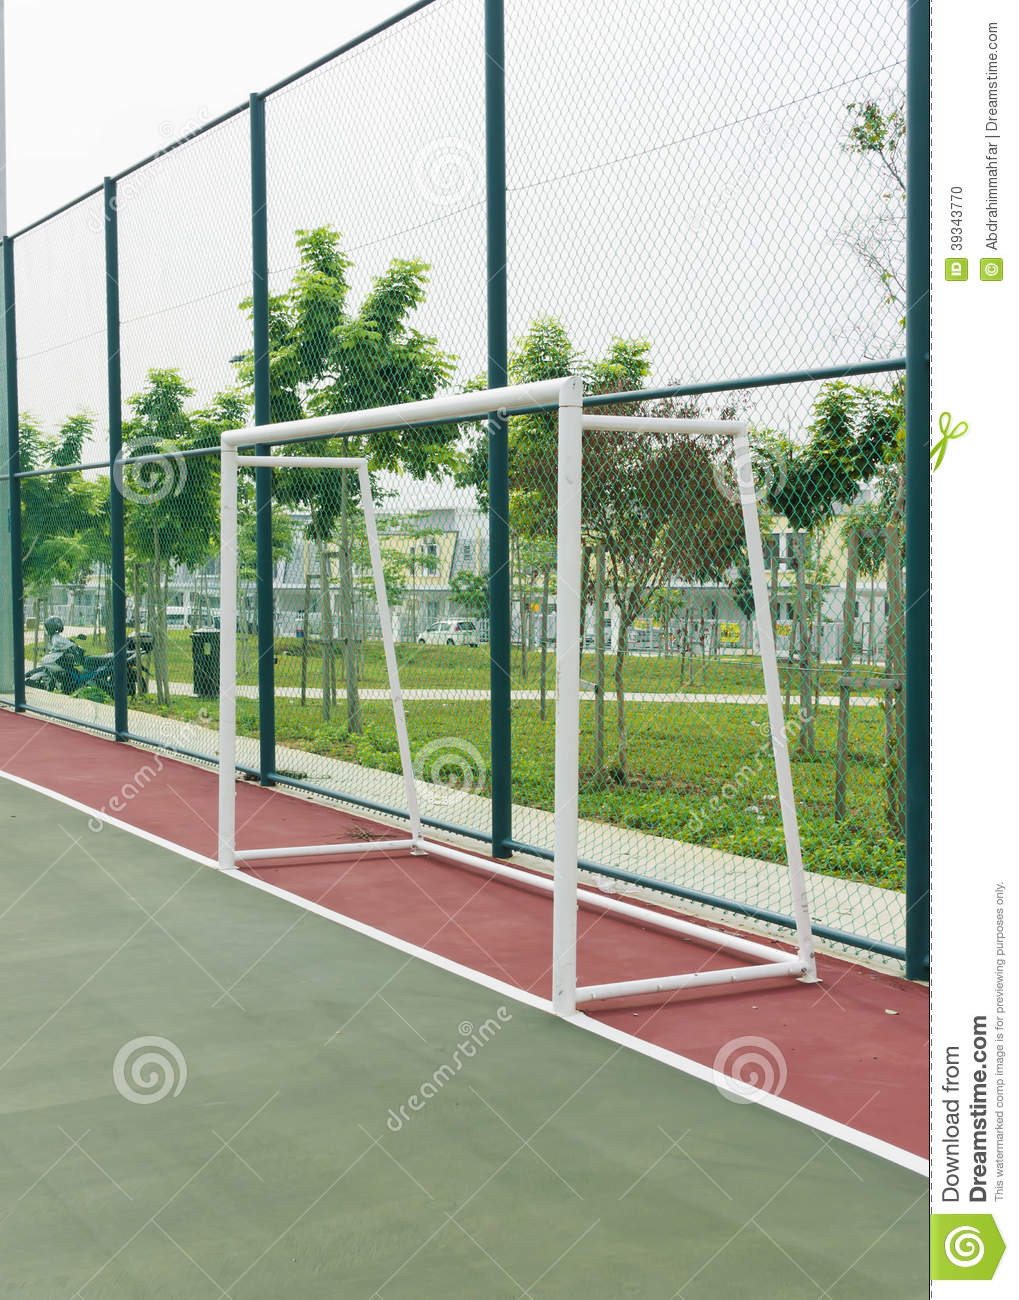 Futsal for Average basketball court size